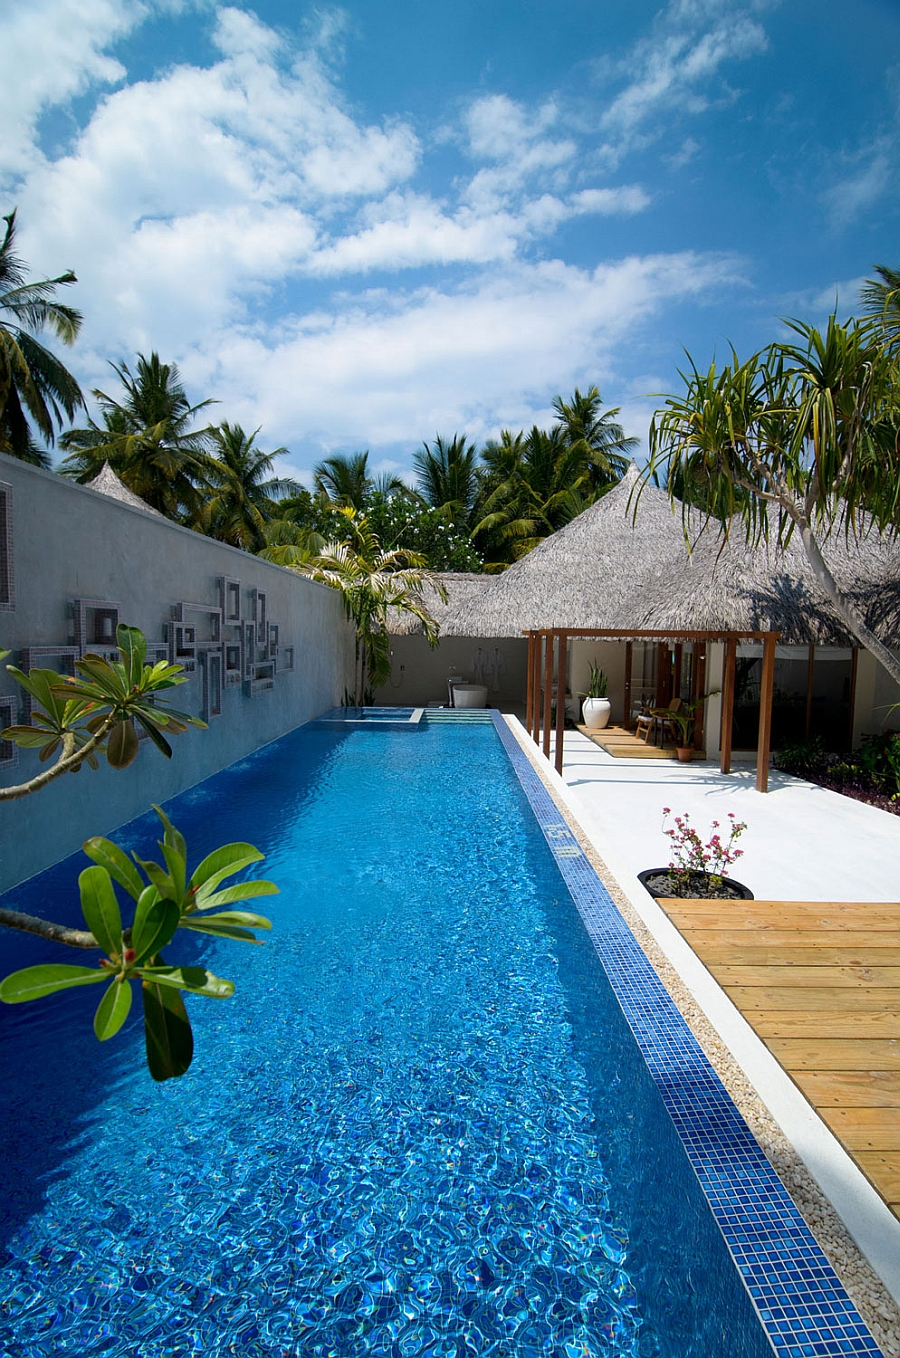 Private villas with lovely pool area at the Kuramathi